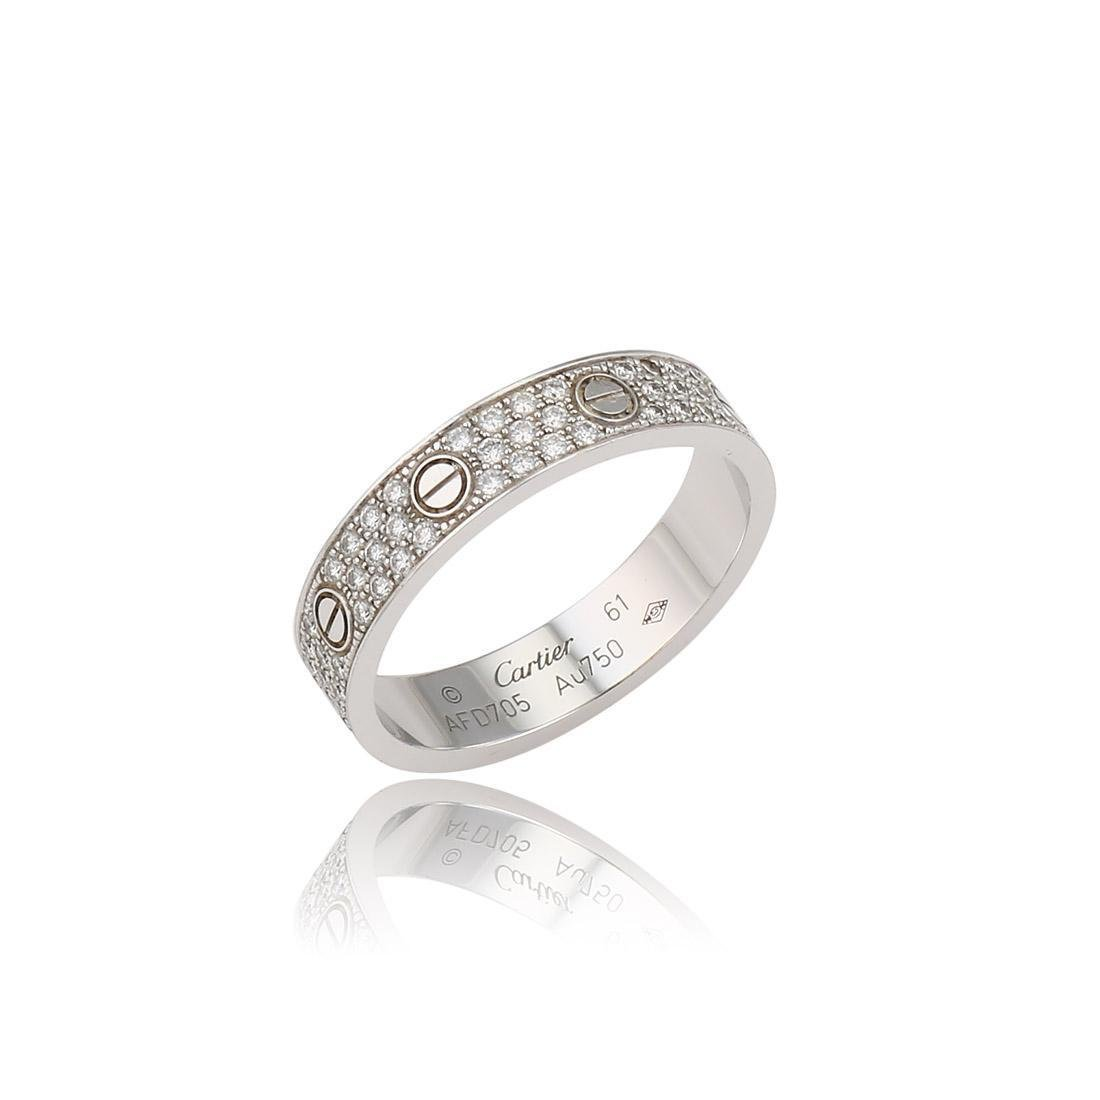 Cartier White Gold Pave Diamond Love Ring size 61